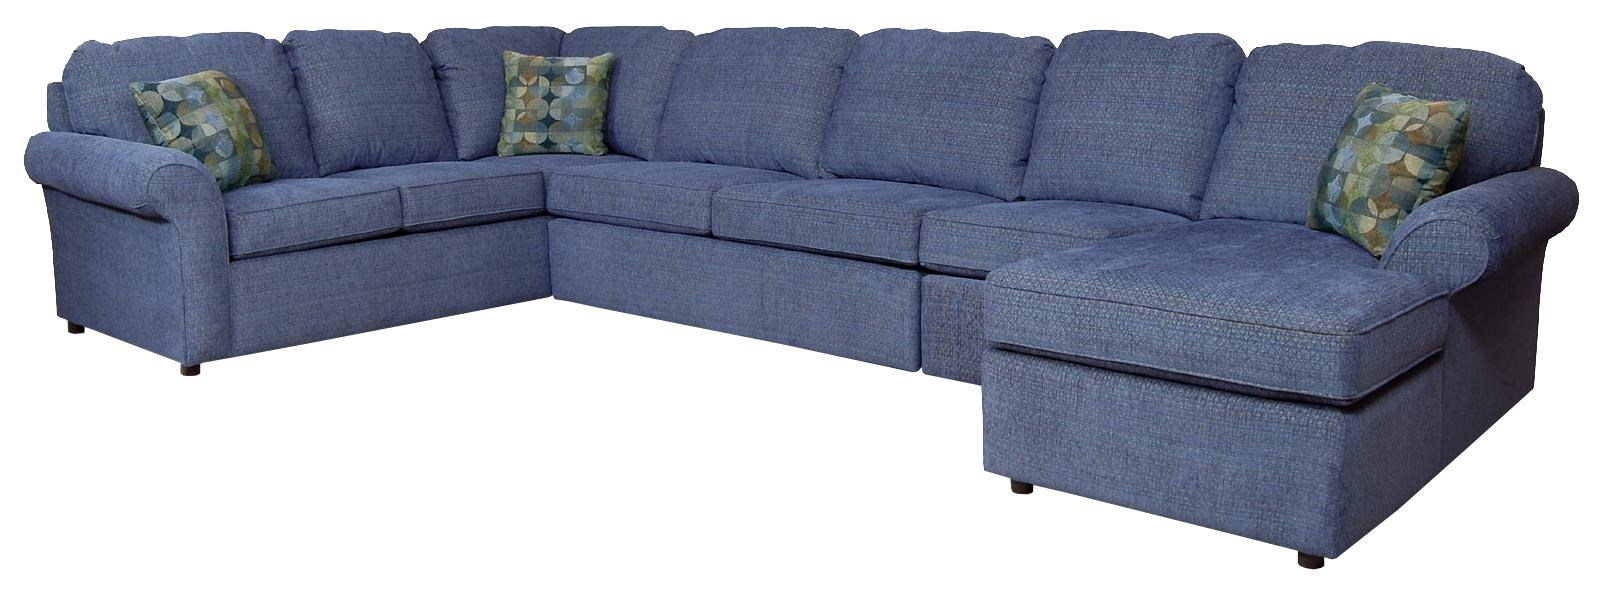 england sectional sofa england thomas sectional sofa with Door Living Room Design Gray Storage Ottoman with Tray